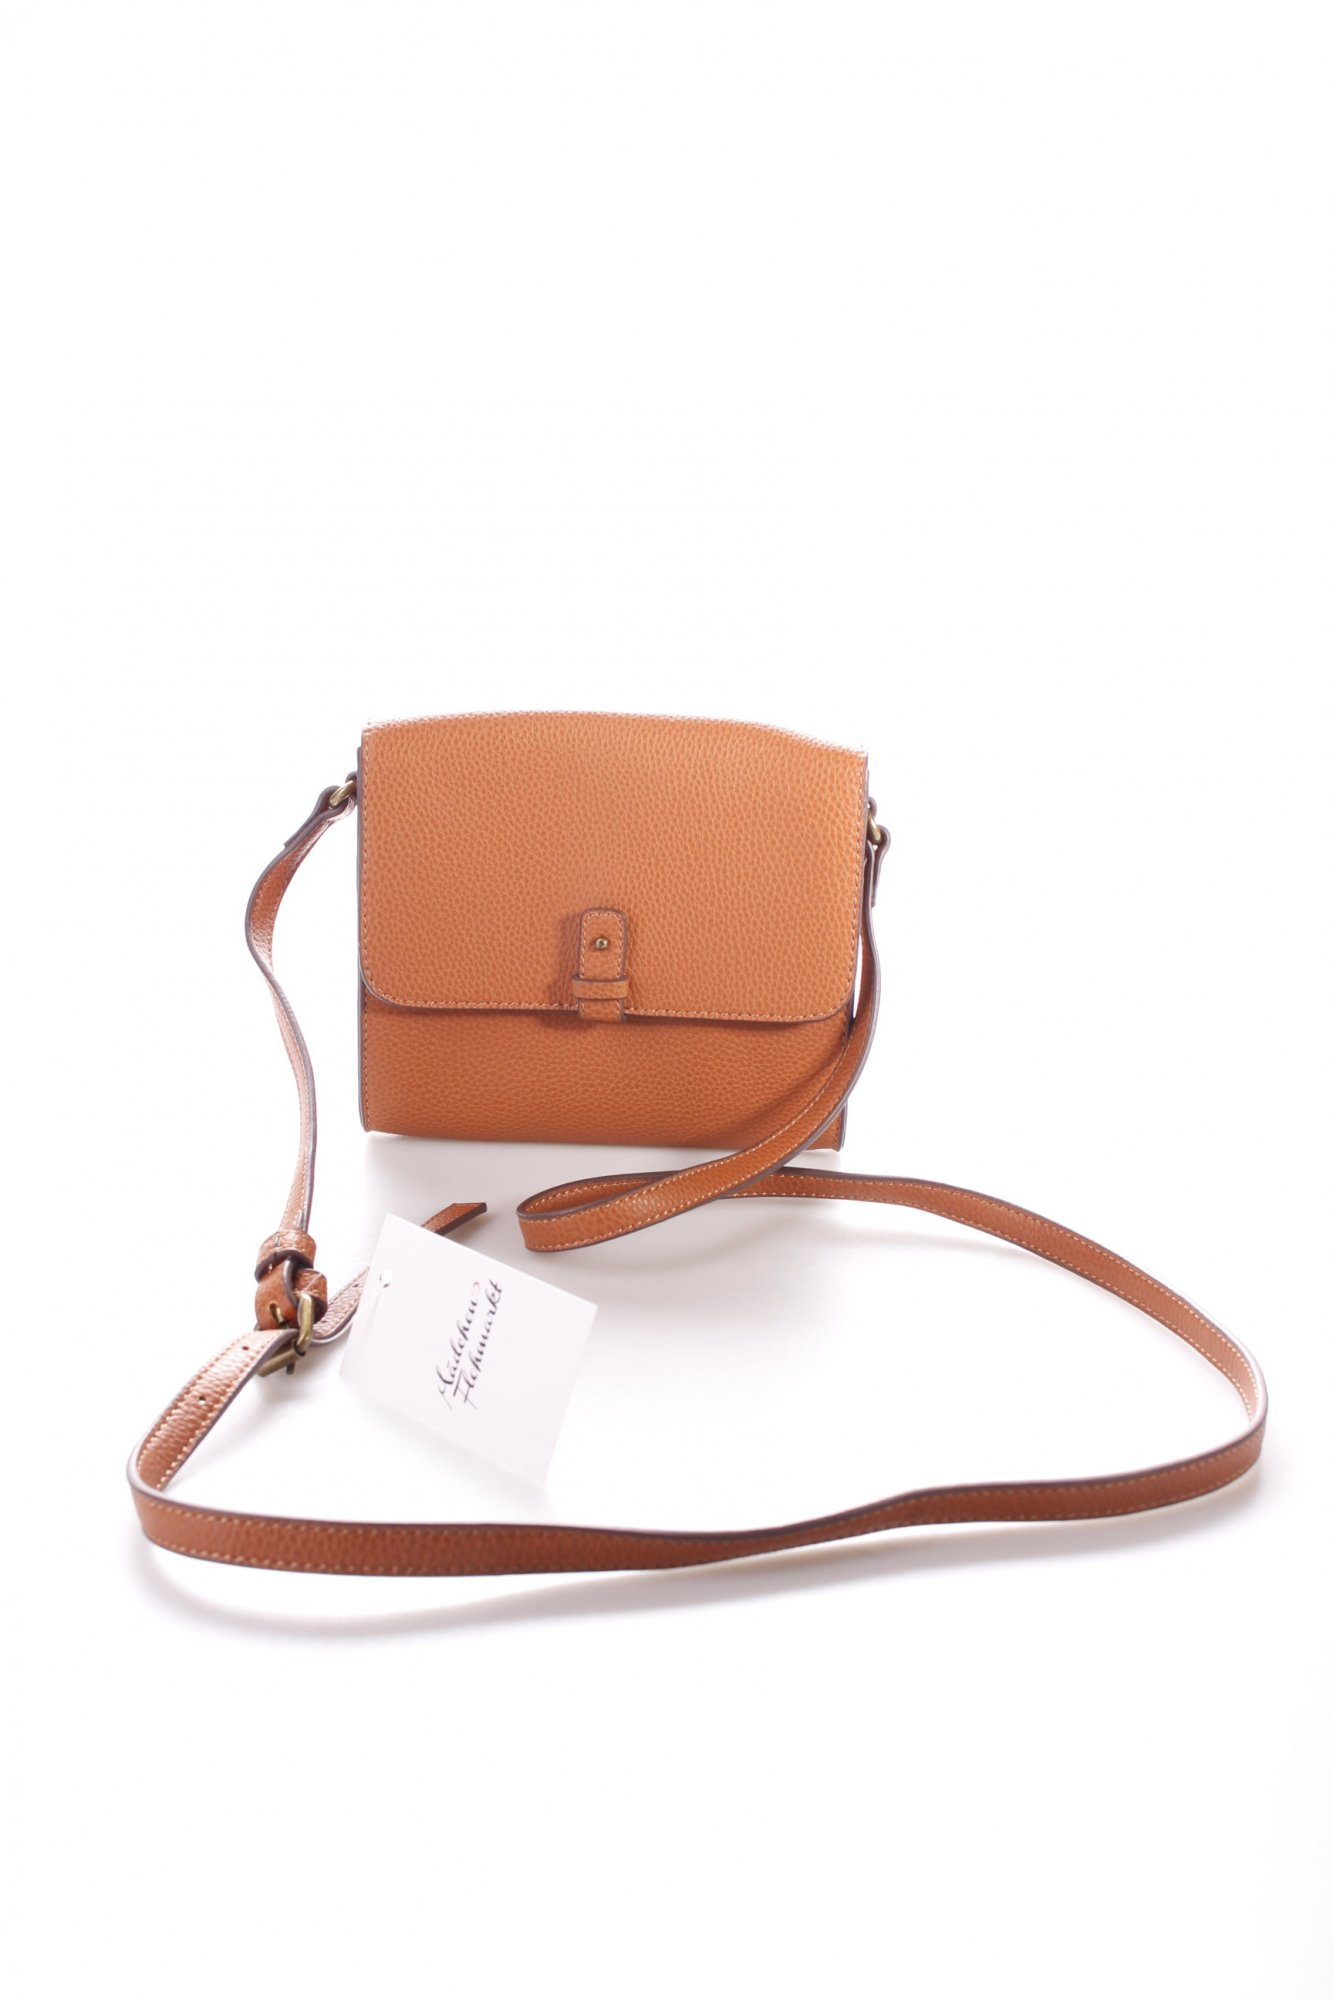 esprit umh ngetasche cognac vintage look damen tasche bag crossbody bag ebay. Black Bedroom Furniture Sets. Home Design Ideas